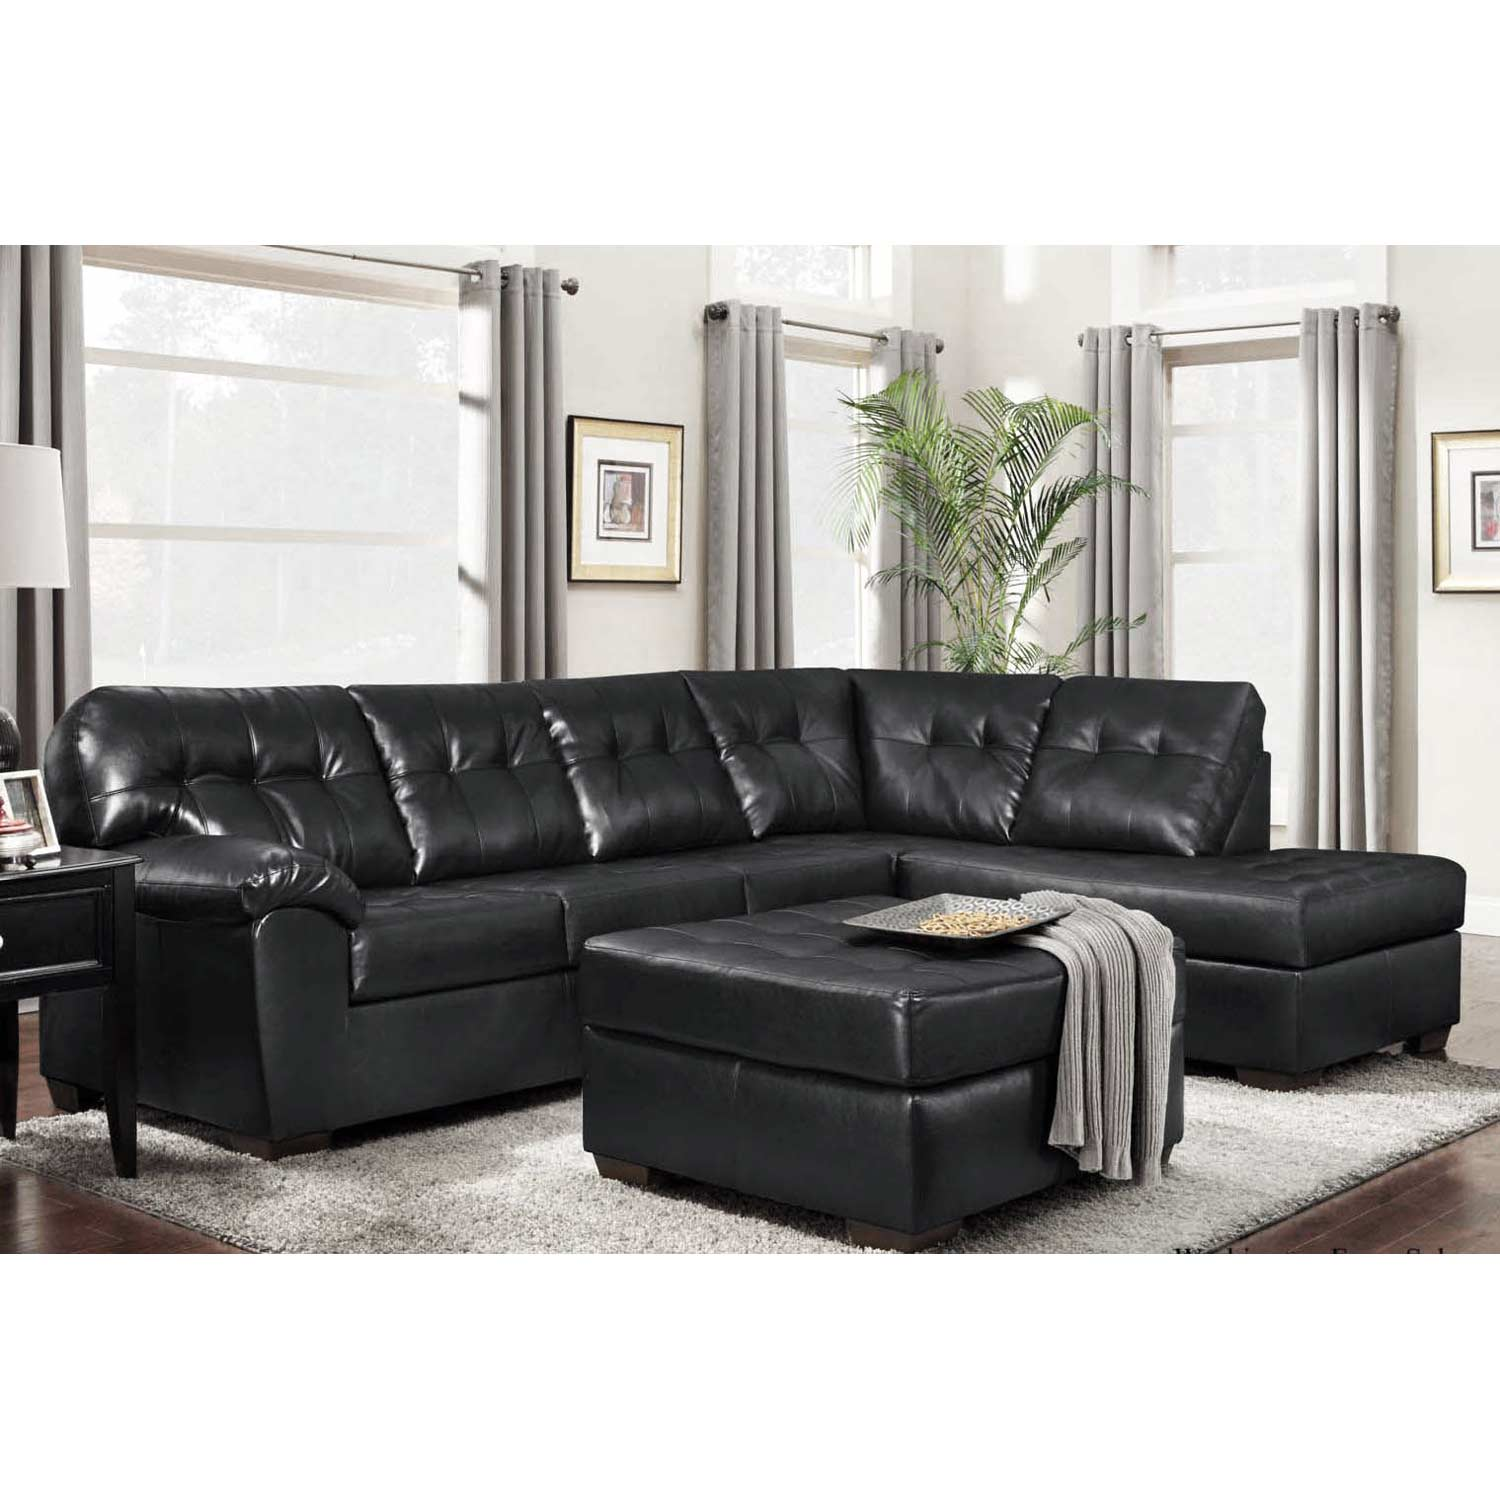 Black And Gold Bedroom Designs Bedroom Ideas Comfy Black Bedroom Furniture Tumblr Kids Bedroom Accessories: Rachel Tufted Chaise Sectional Sofa